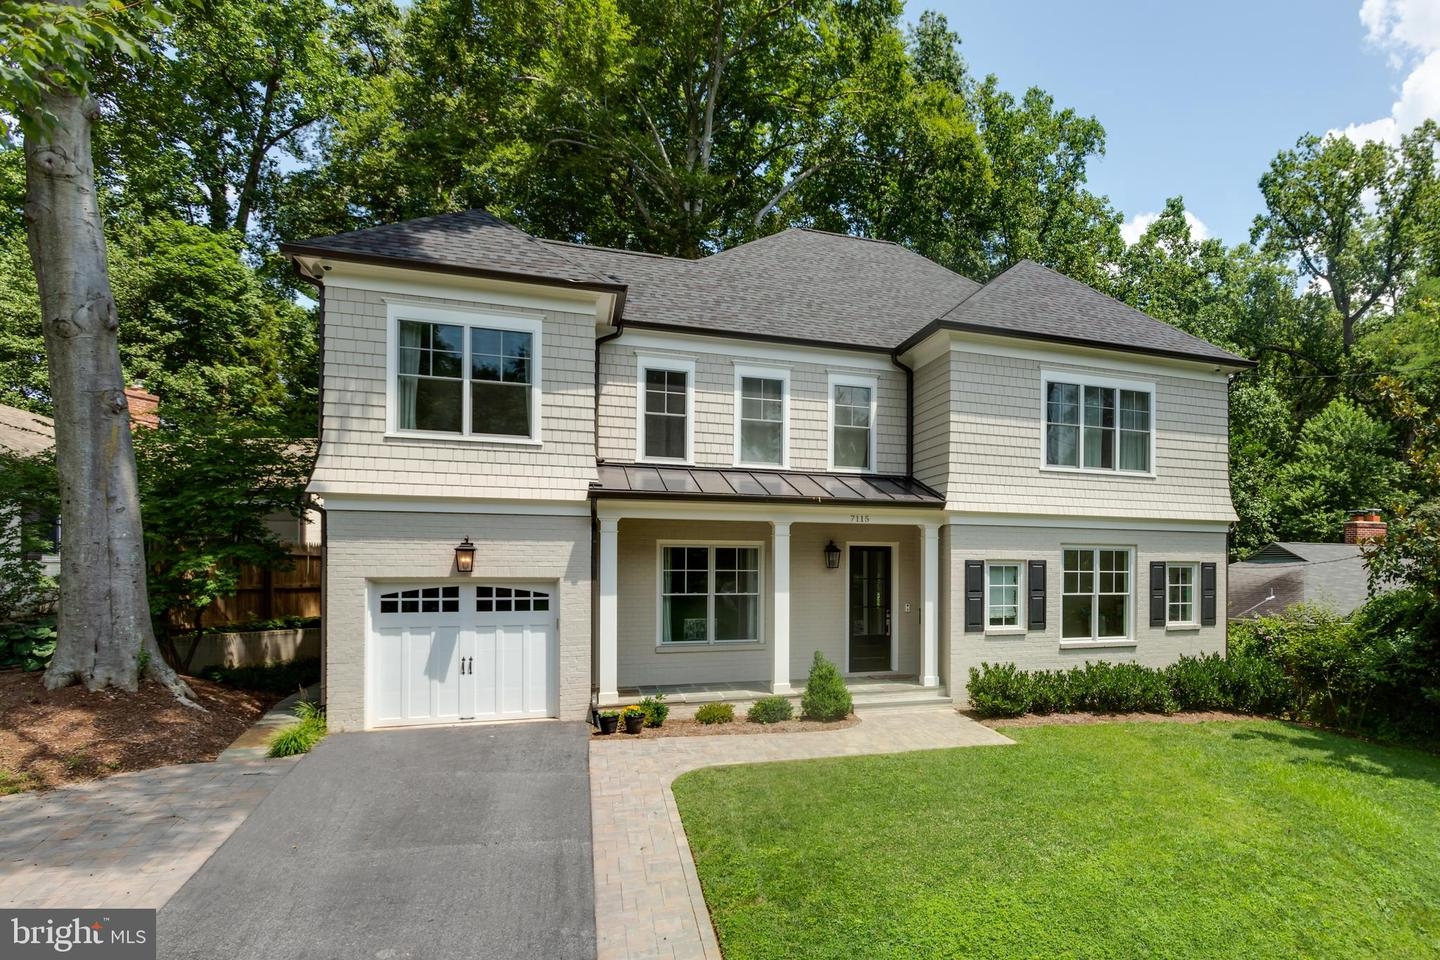 7115 EDGEVALE STREET, CHEVY CHASE, Maryland